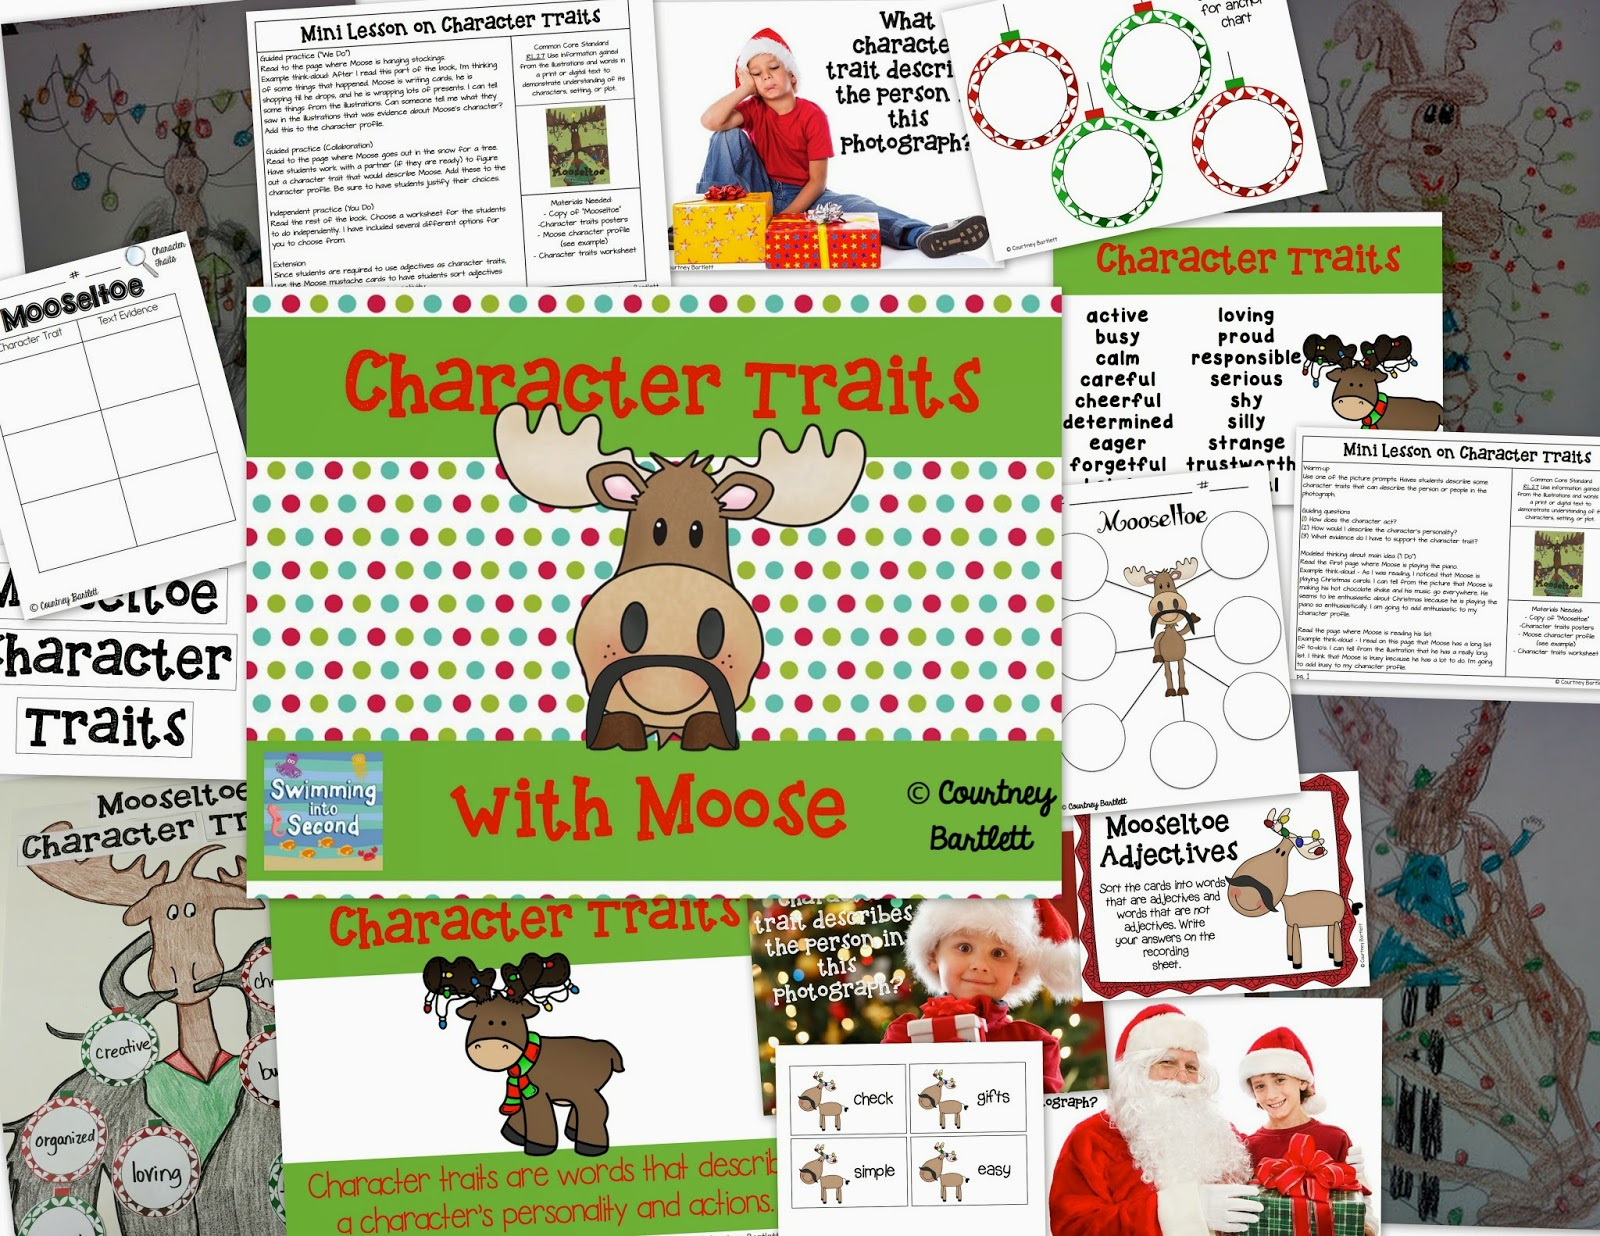 http://www.teacherspayteachers.com/Product/Character-Traits-minilesson-with-Mooseltoe-1587176